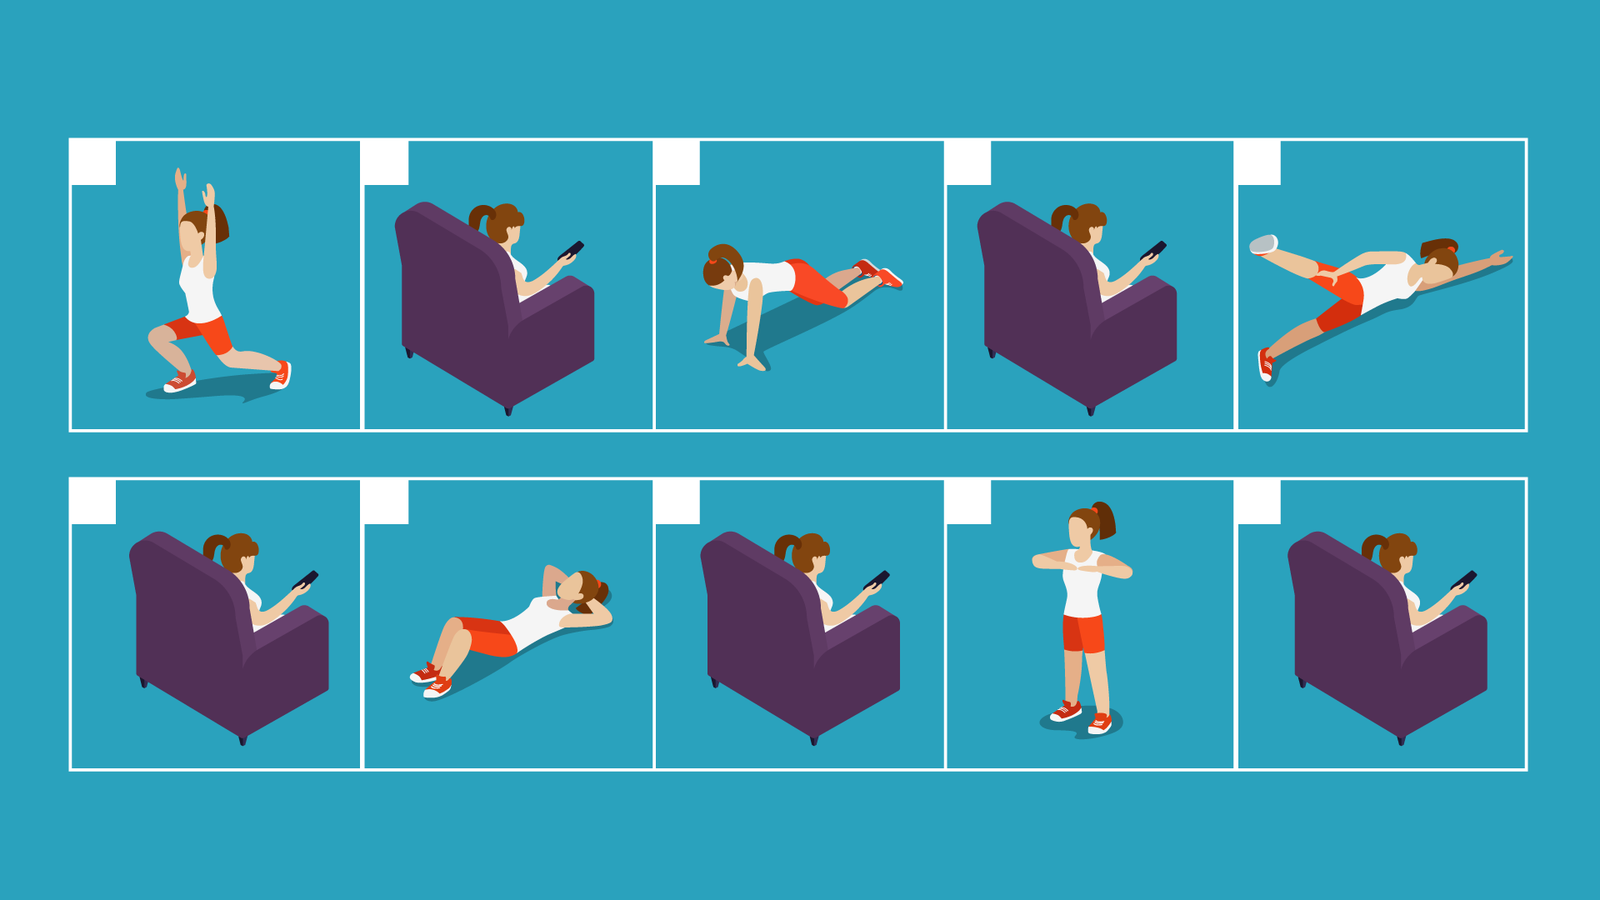 Rest Days Are A Standard Part Of Exercise Programs, But They're Not The  Only Way To Avoid Overworking Yourself Let's Look At The Difference  Between Rest